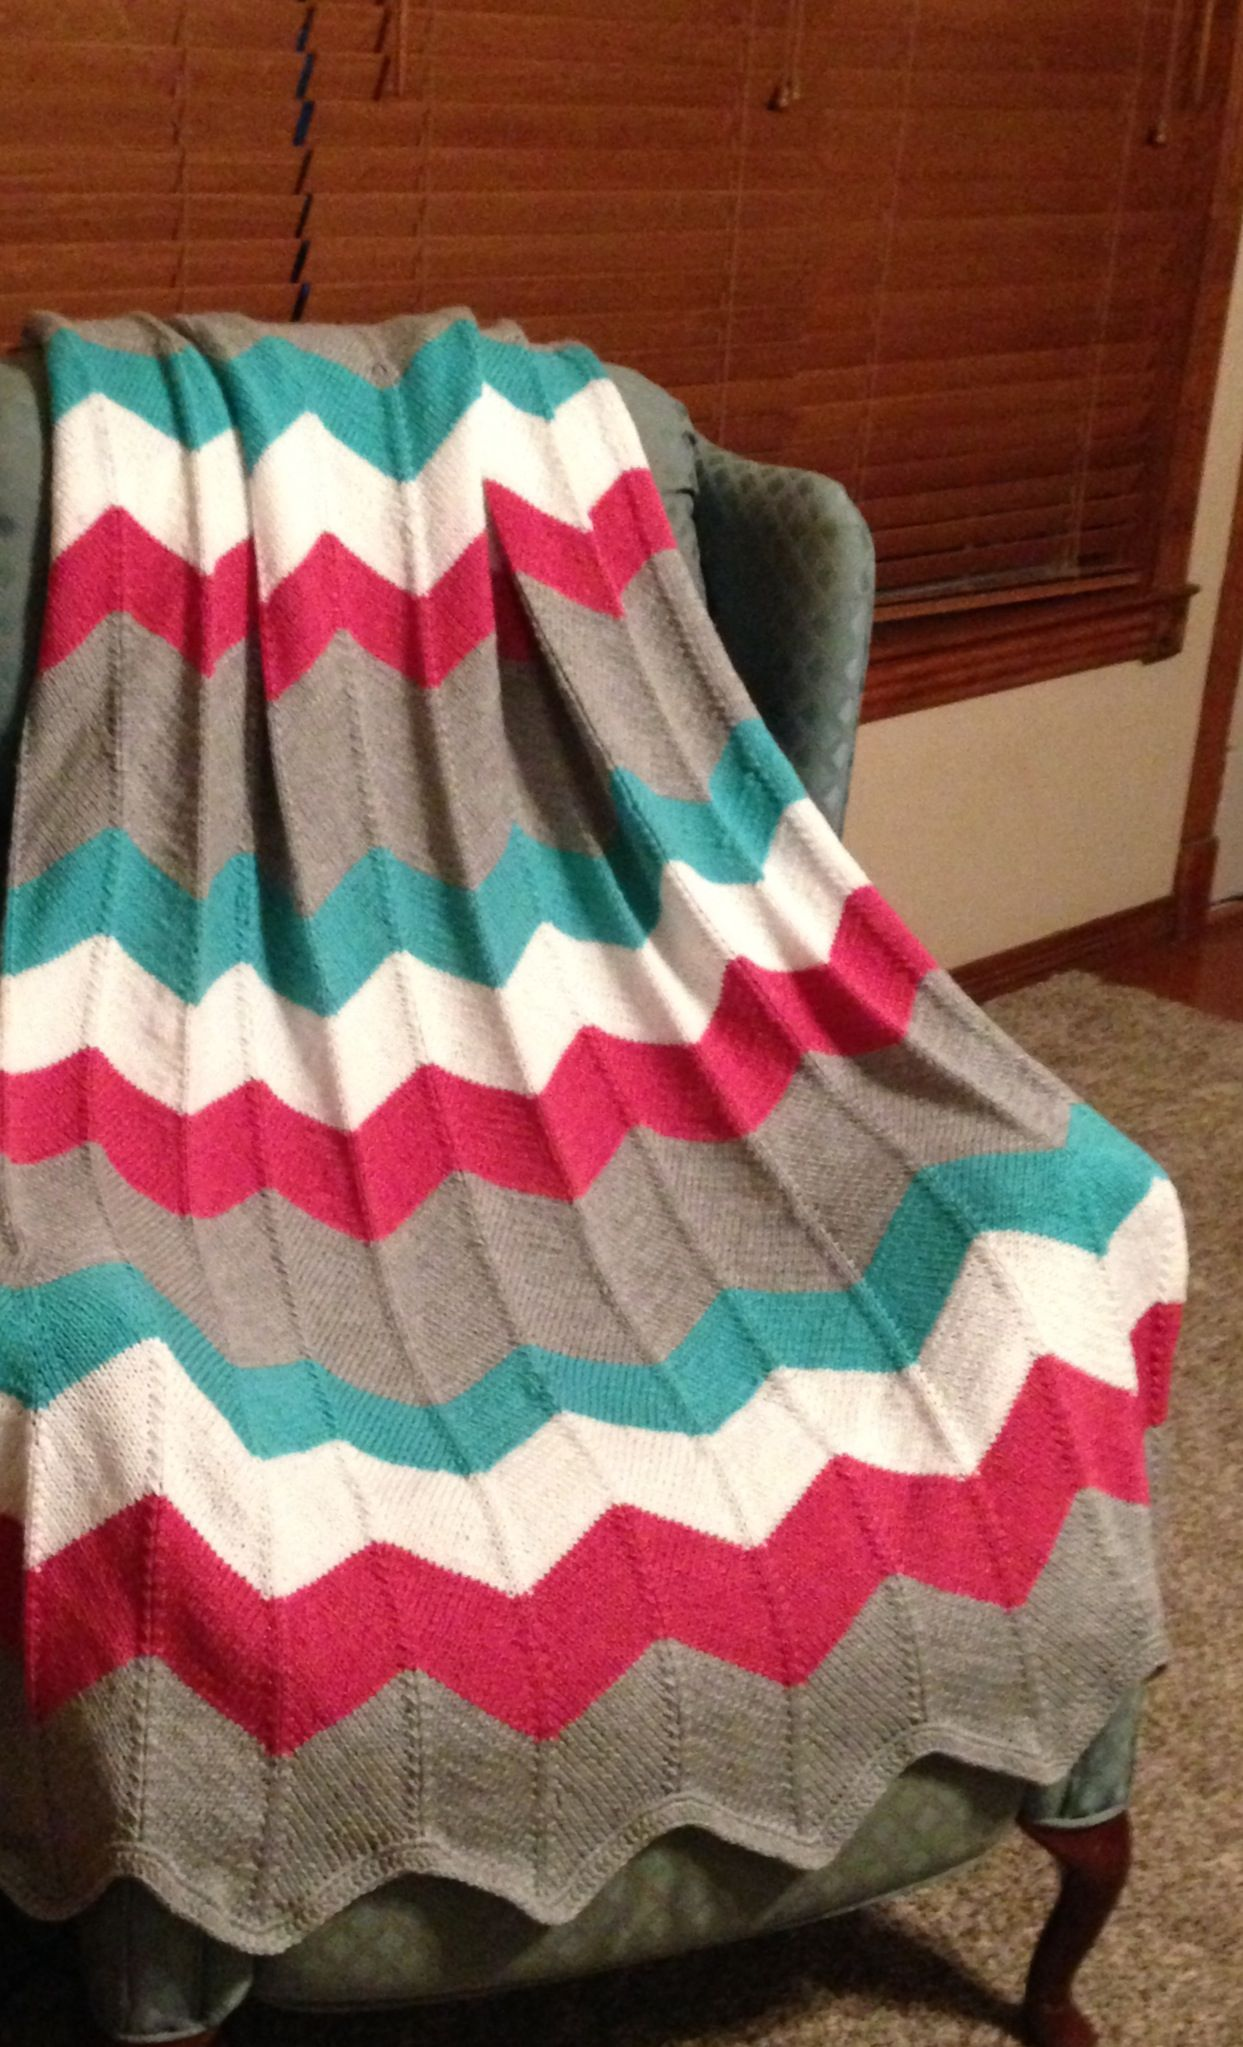 Knitted Chevron Afghan For My Darling Daughter, Away At College